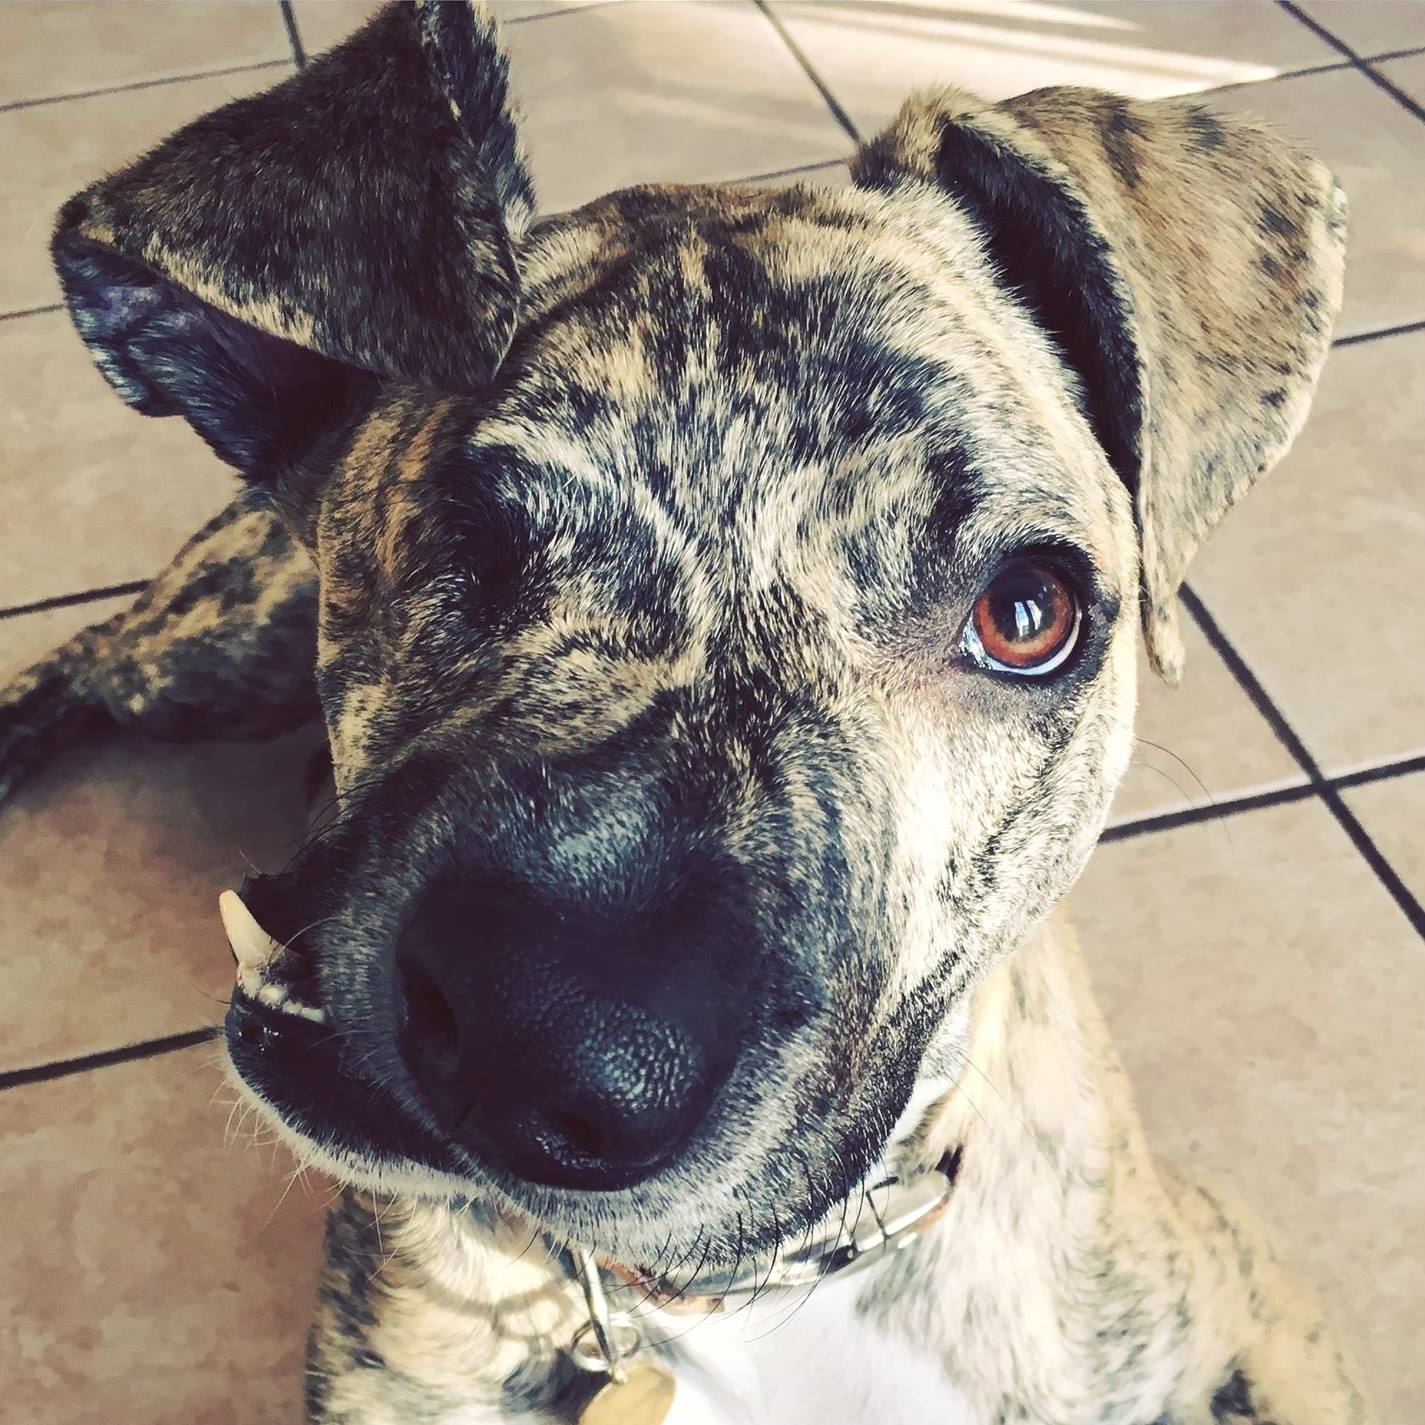 San Antonio BMW >> S.A. rescue dog inspires with one eye and a semicolon face - Houston Chronicle